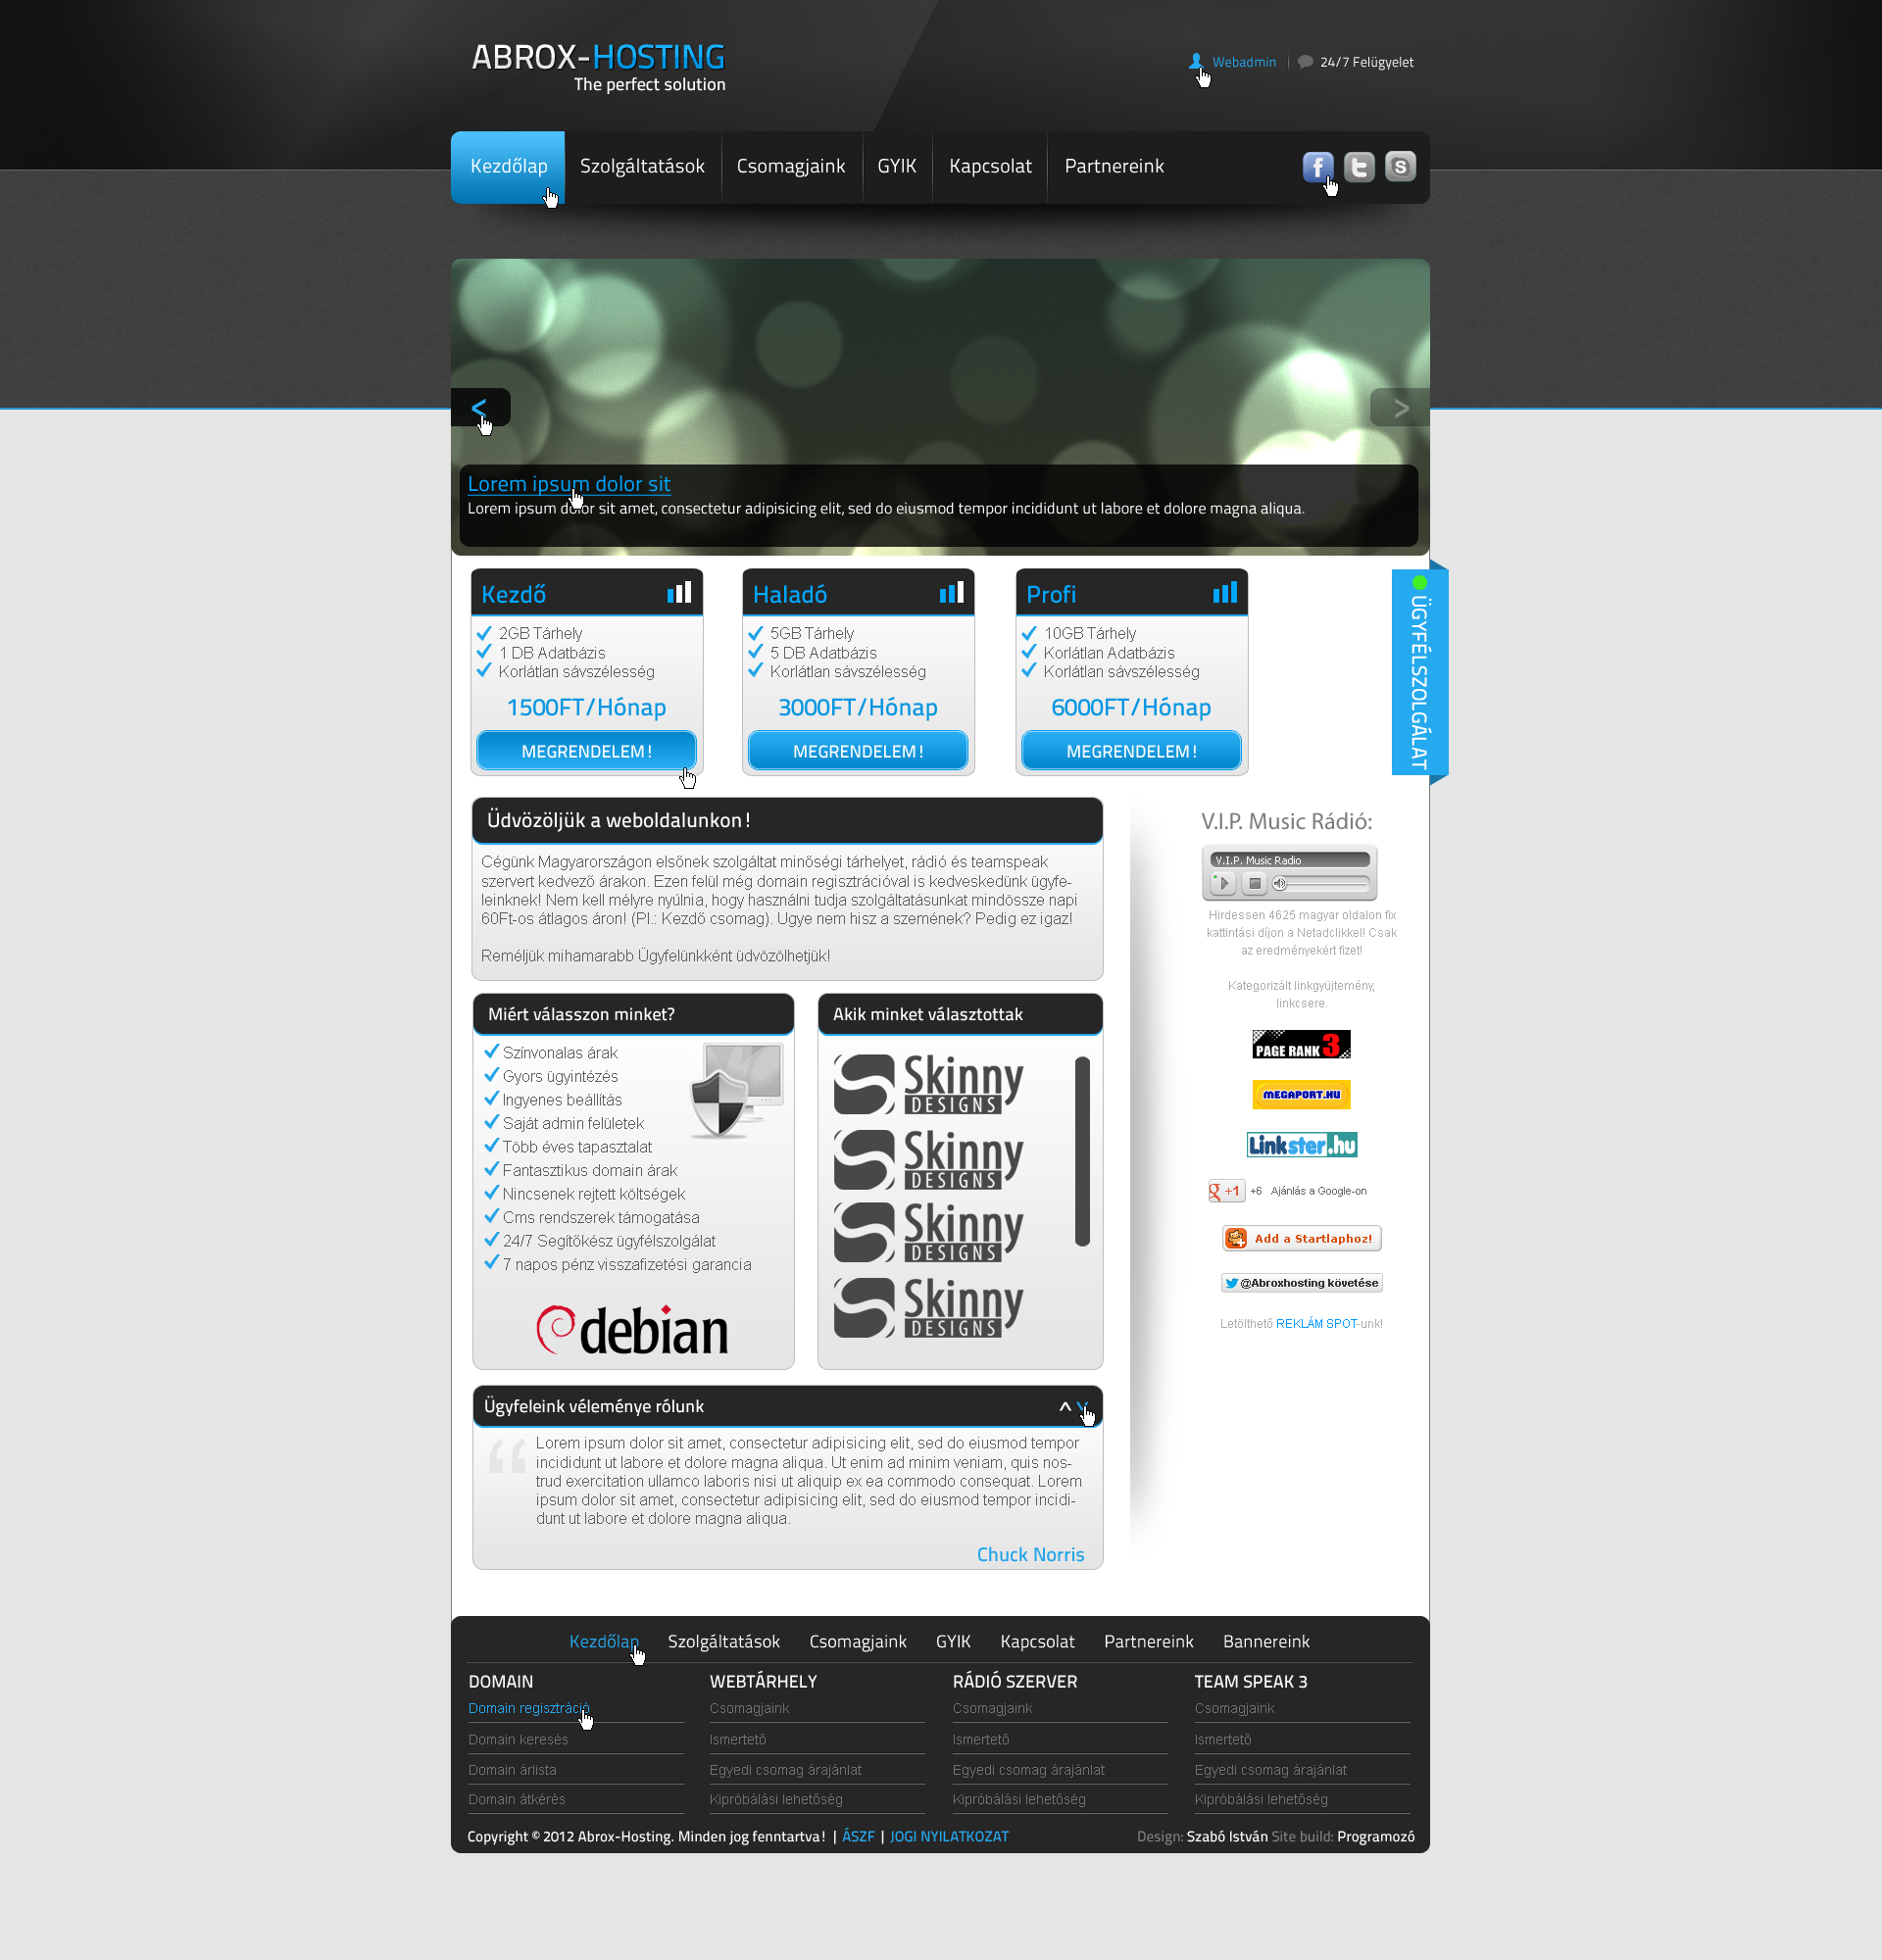 Abrox-Hosting's webdesign by SkinnyDesigns